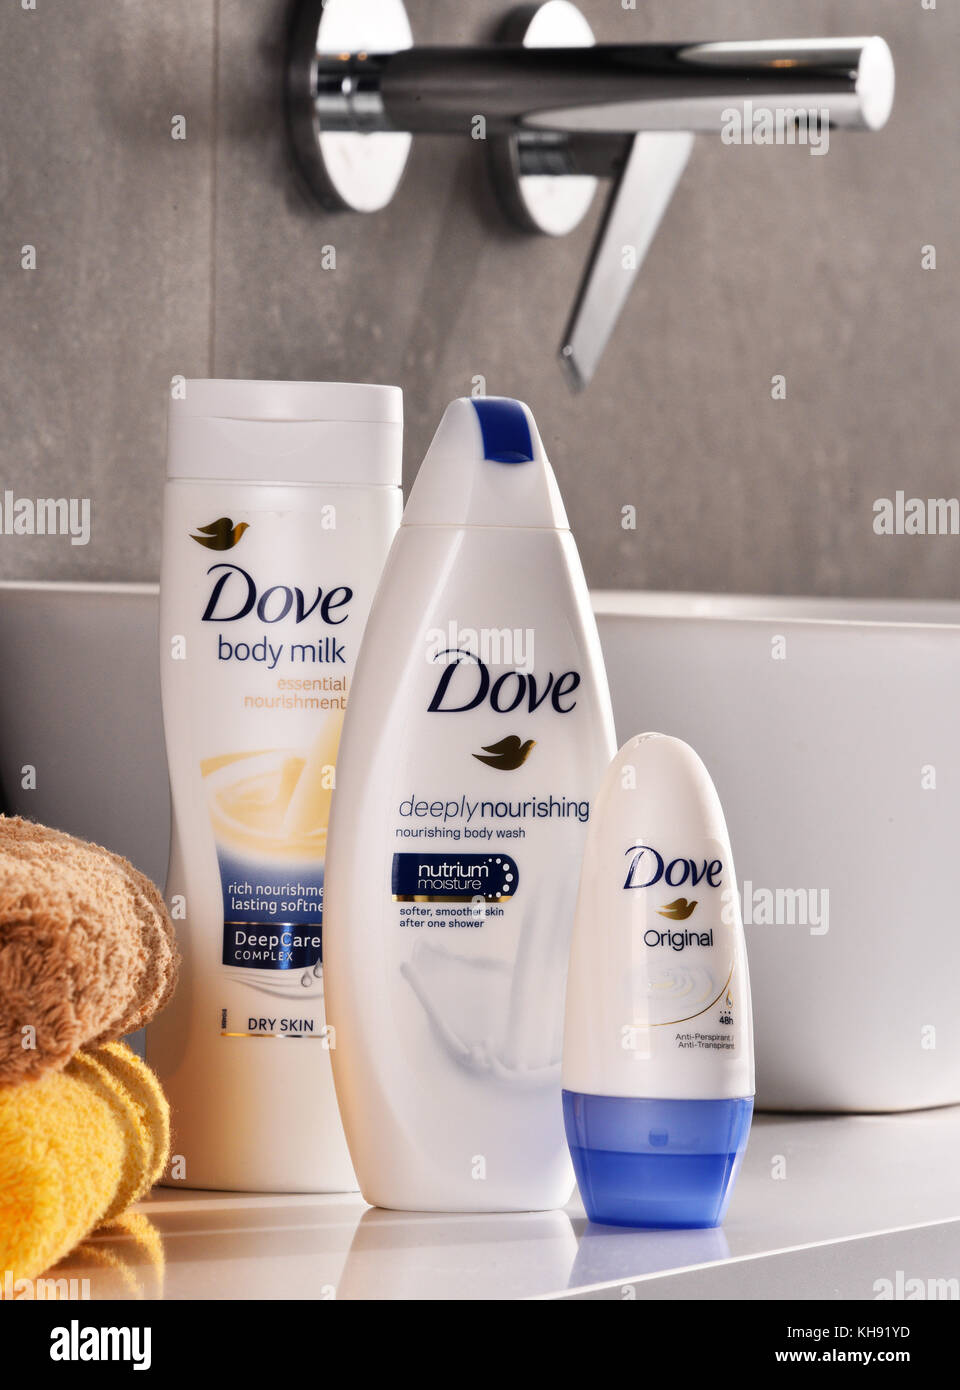 POZNAN, POLAND - NOV 10, 2017: Dove products, a personal care brand, owned by Unilever and sold in more than 80 - Stock Image